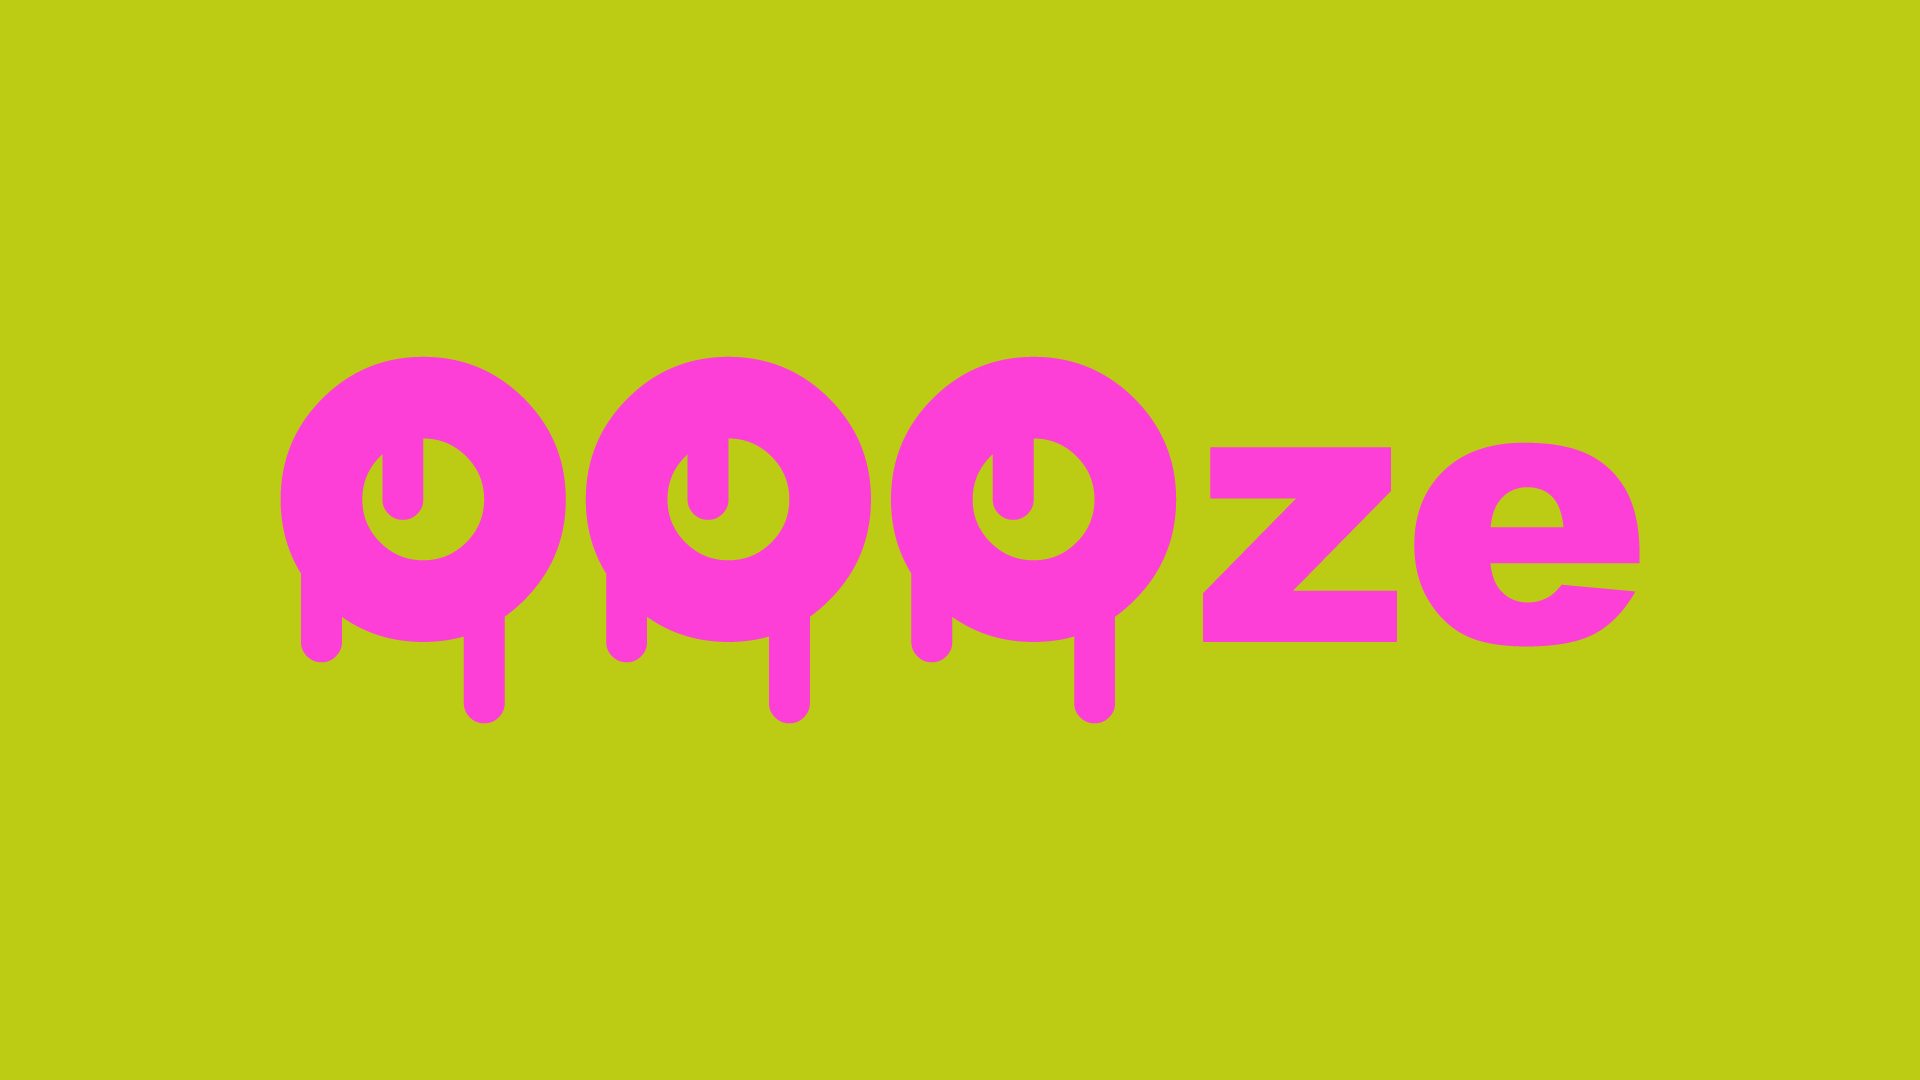 oooze.png